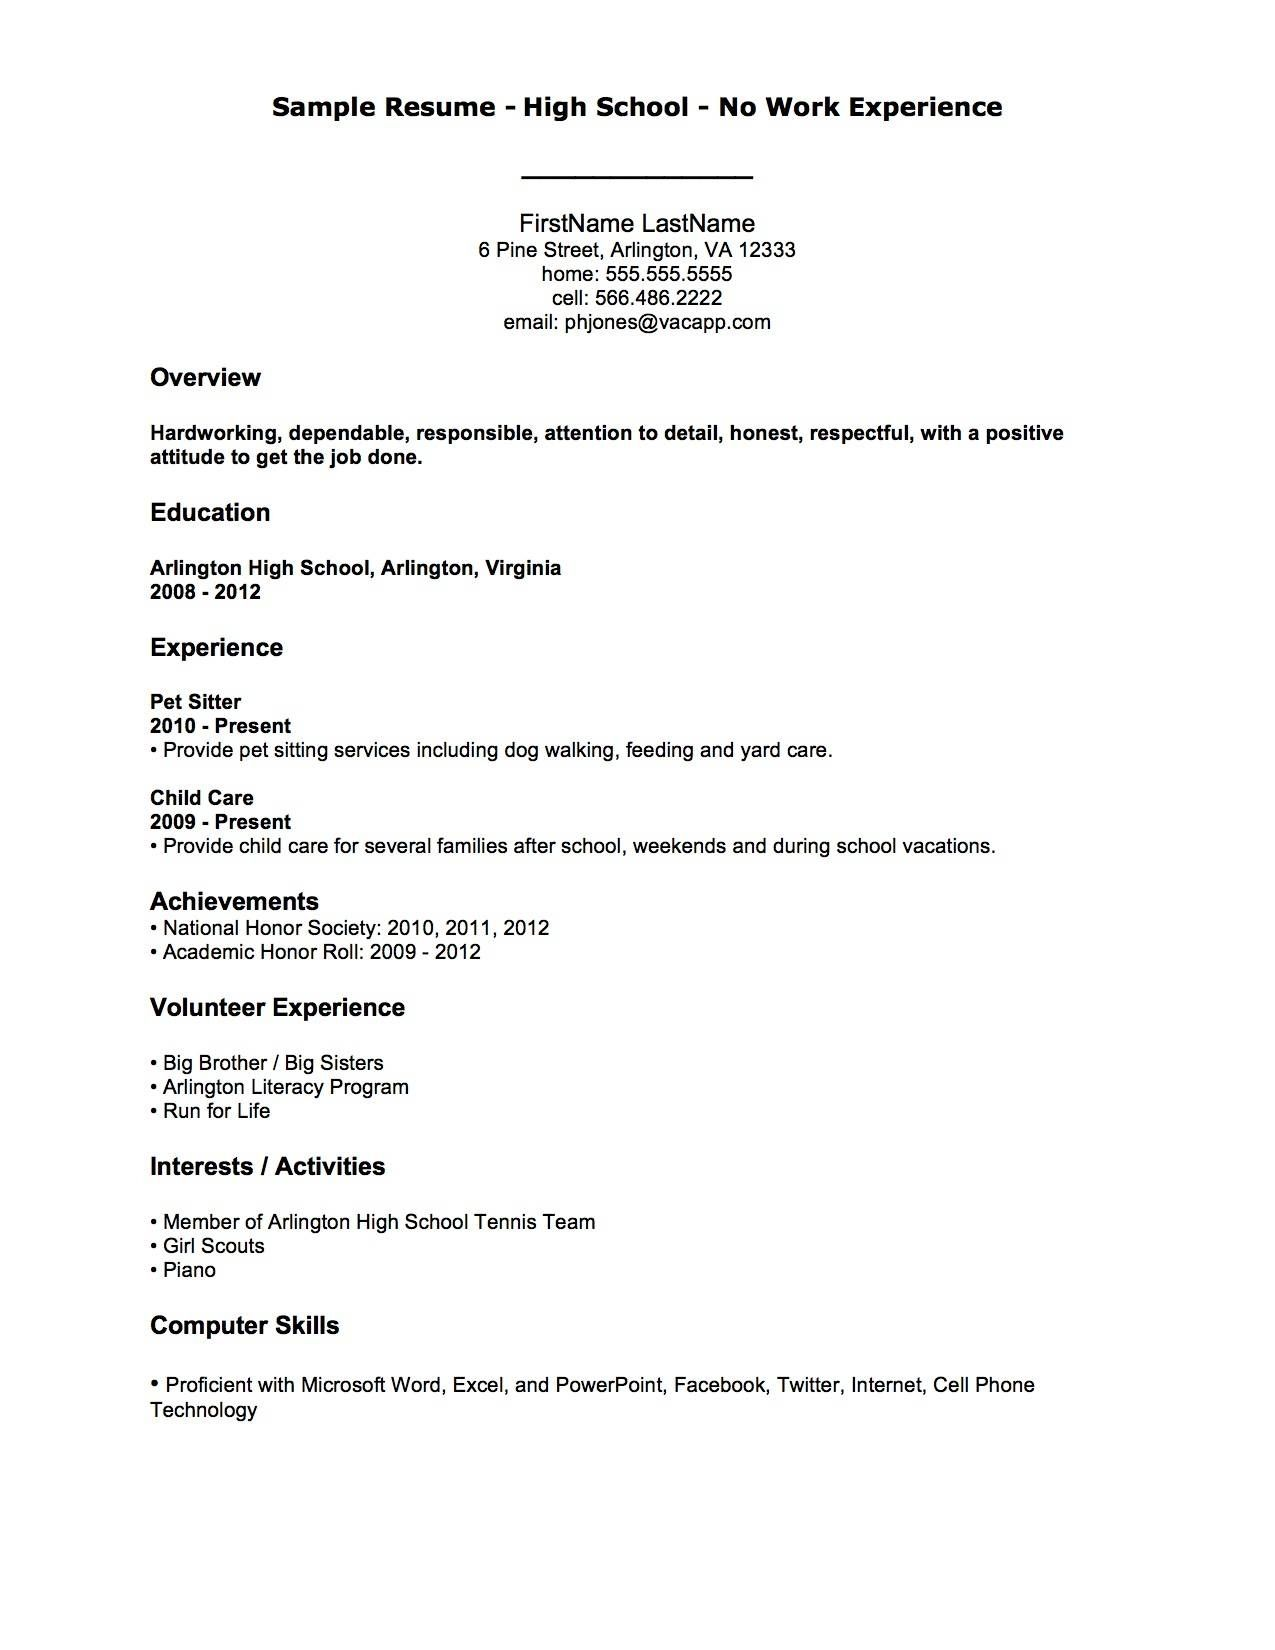 Free Resume Templates Canada First job resume, Job